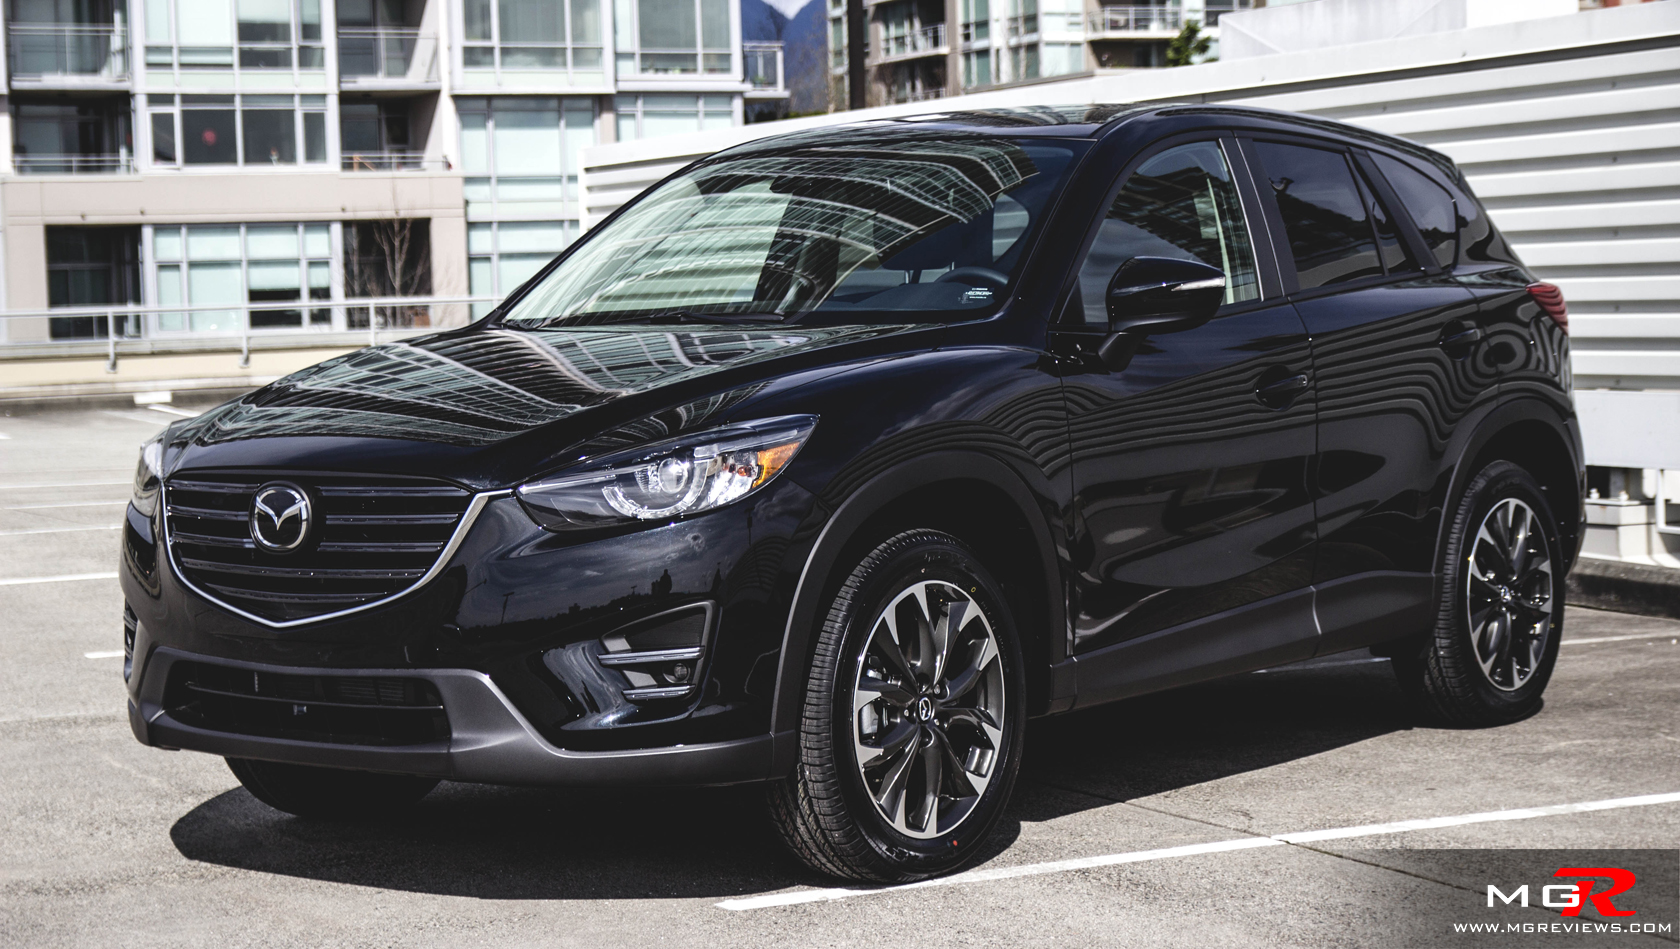 2016 mazda cx 5 gt m g reviews. Black Bedroom Furniture Sets. Home Design Ideas